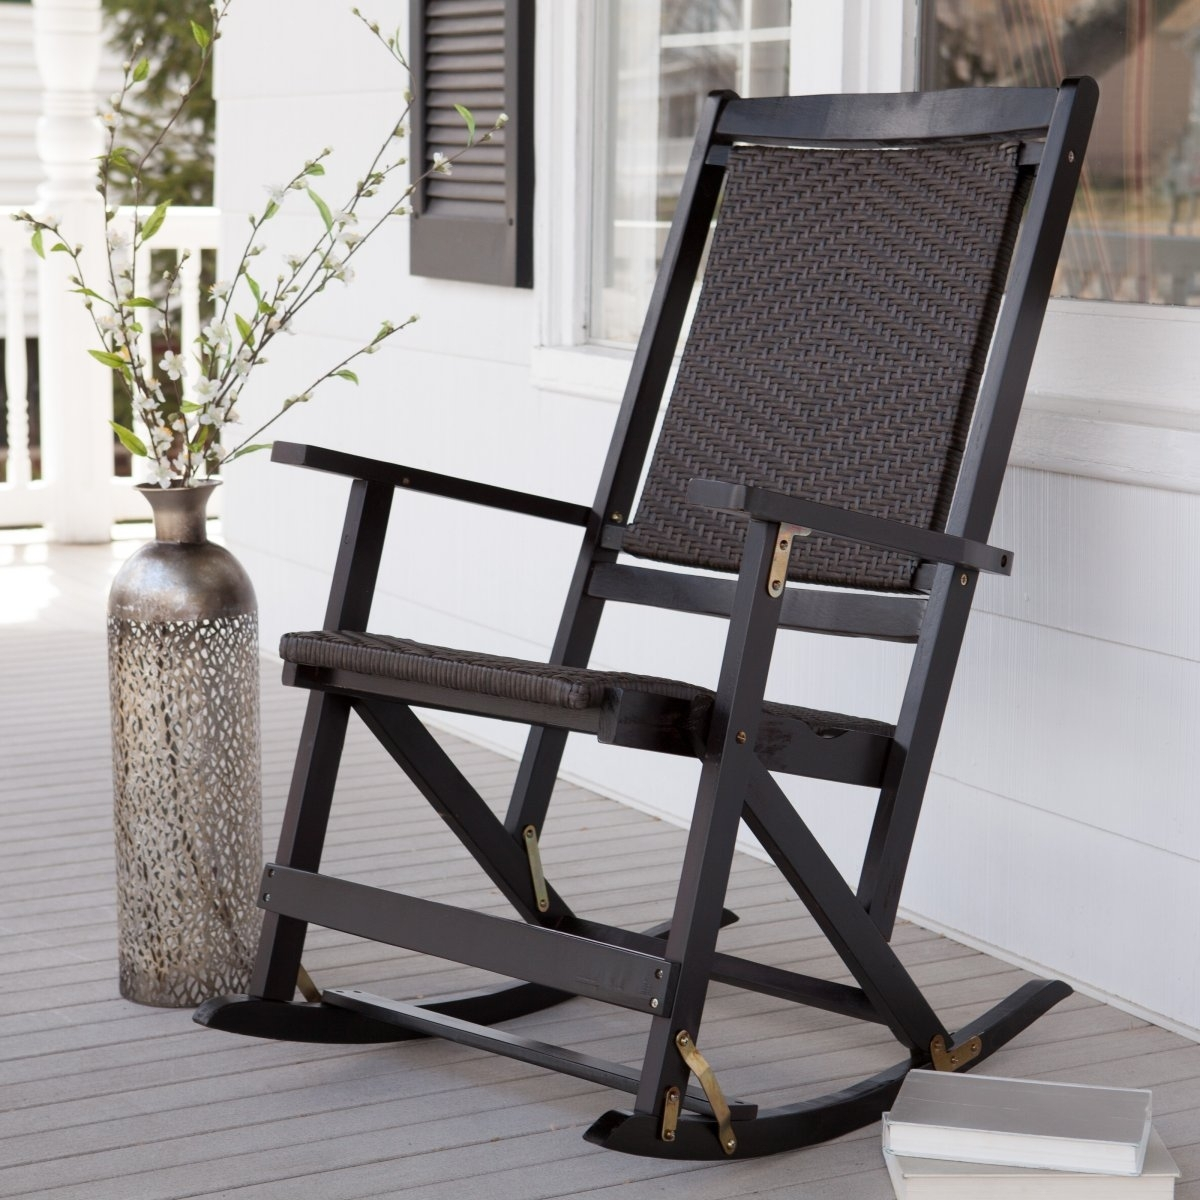 Choosing A Patio Rocking Chair — Wilson Home Ideas In Patio Metal Rocking Chairs (View 4 of 15)